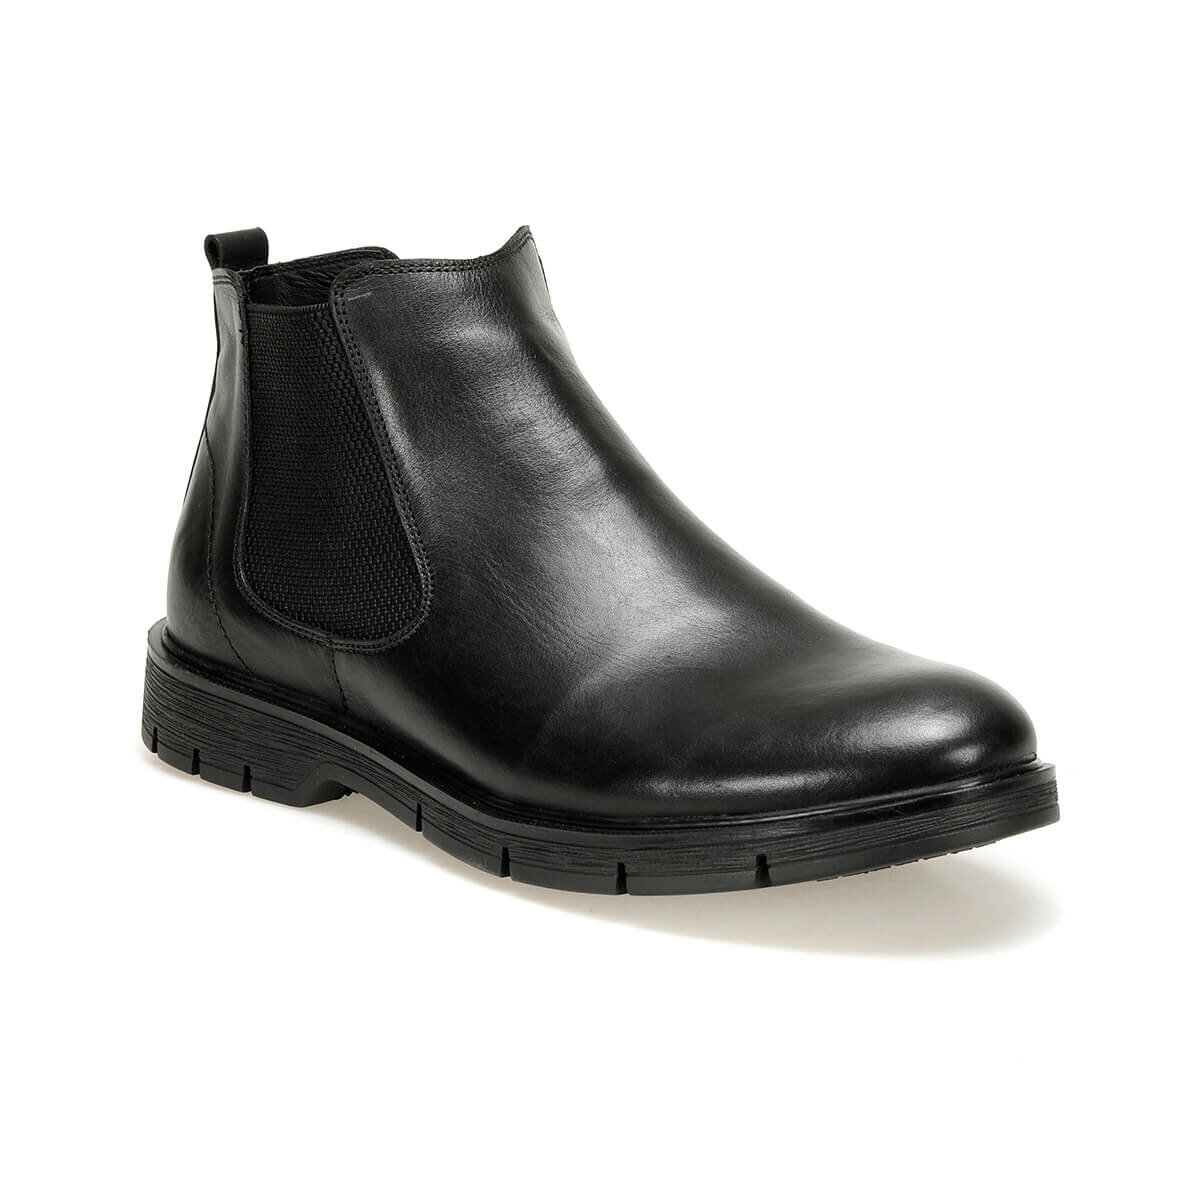 FLO 2025 Black Men Boots Garamond